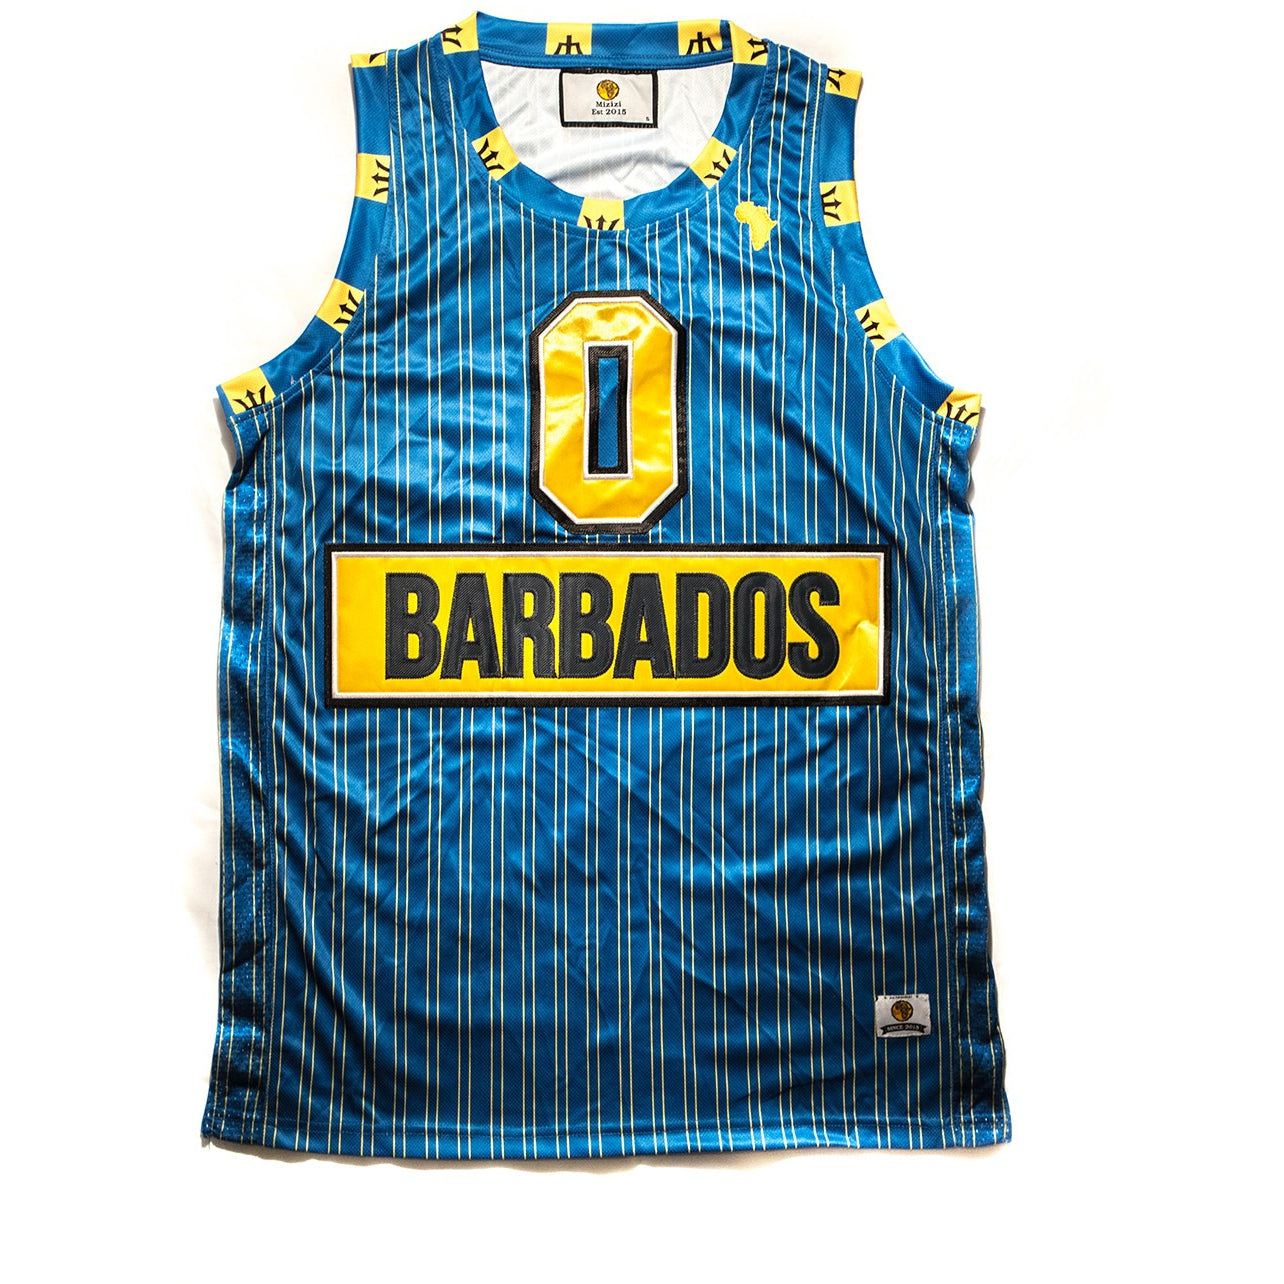 Barbados Basketball Jersey